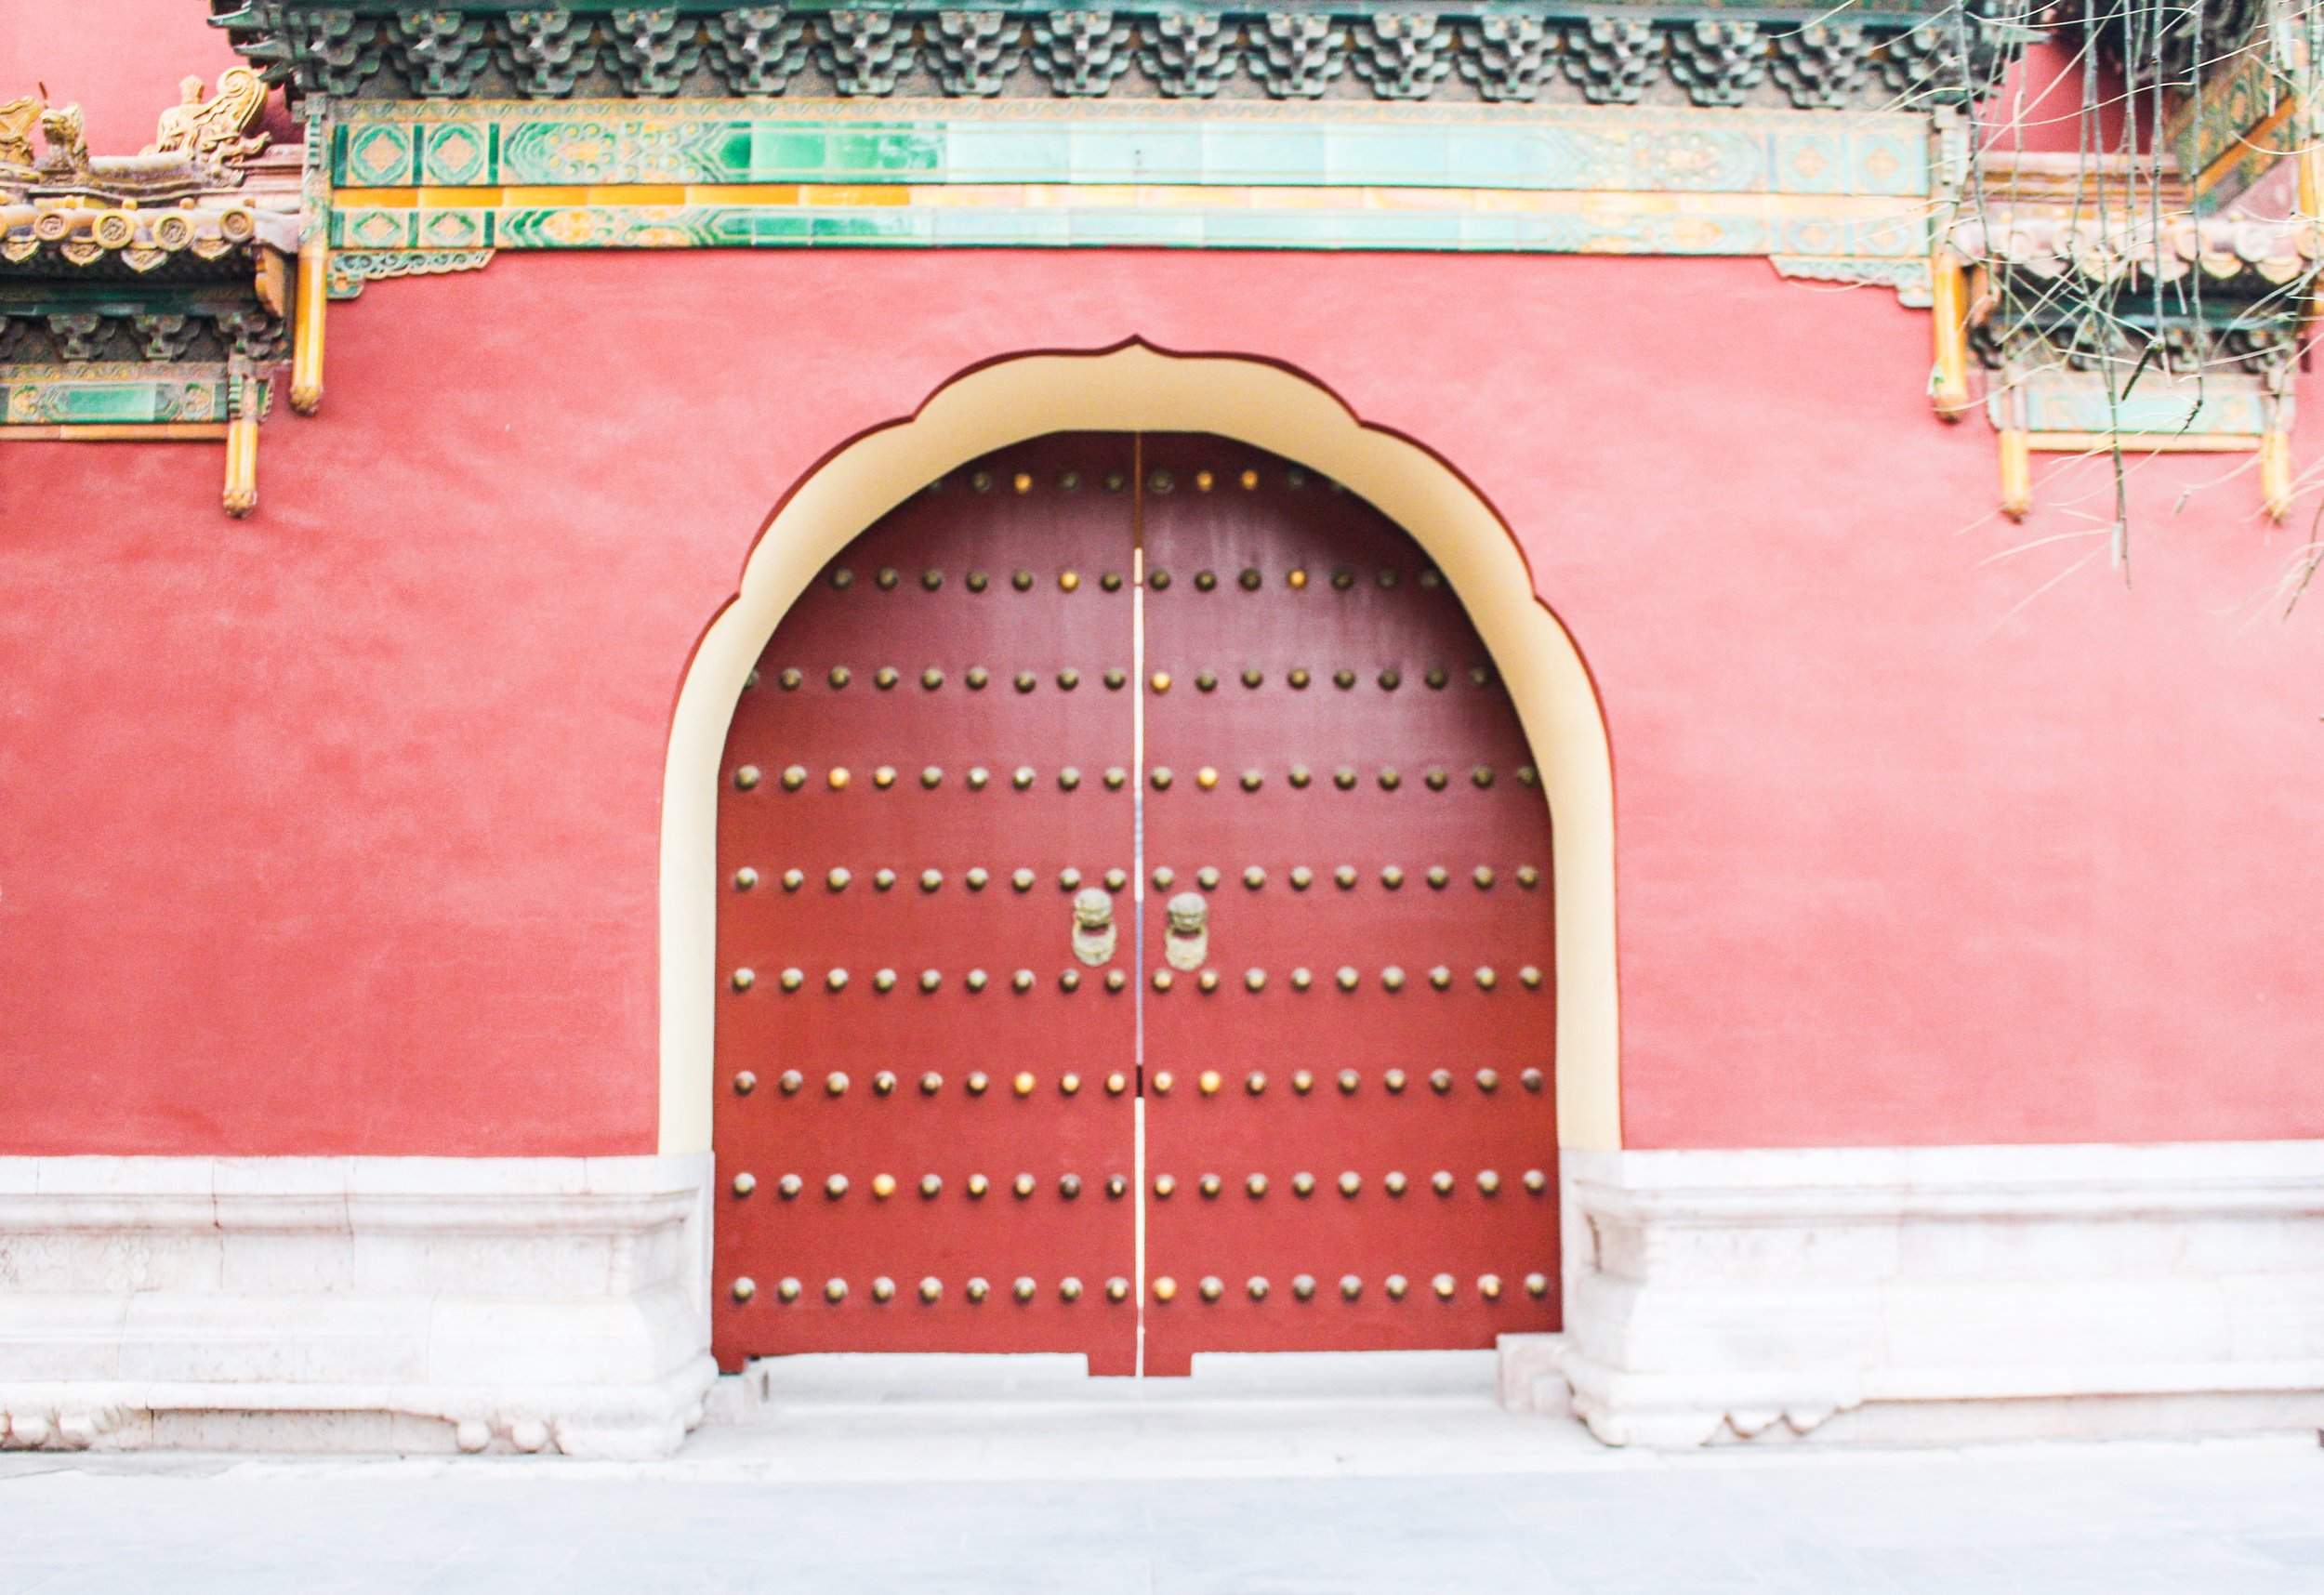 Transit Visa Requirements for a Layover in China - The Forbidden City